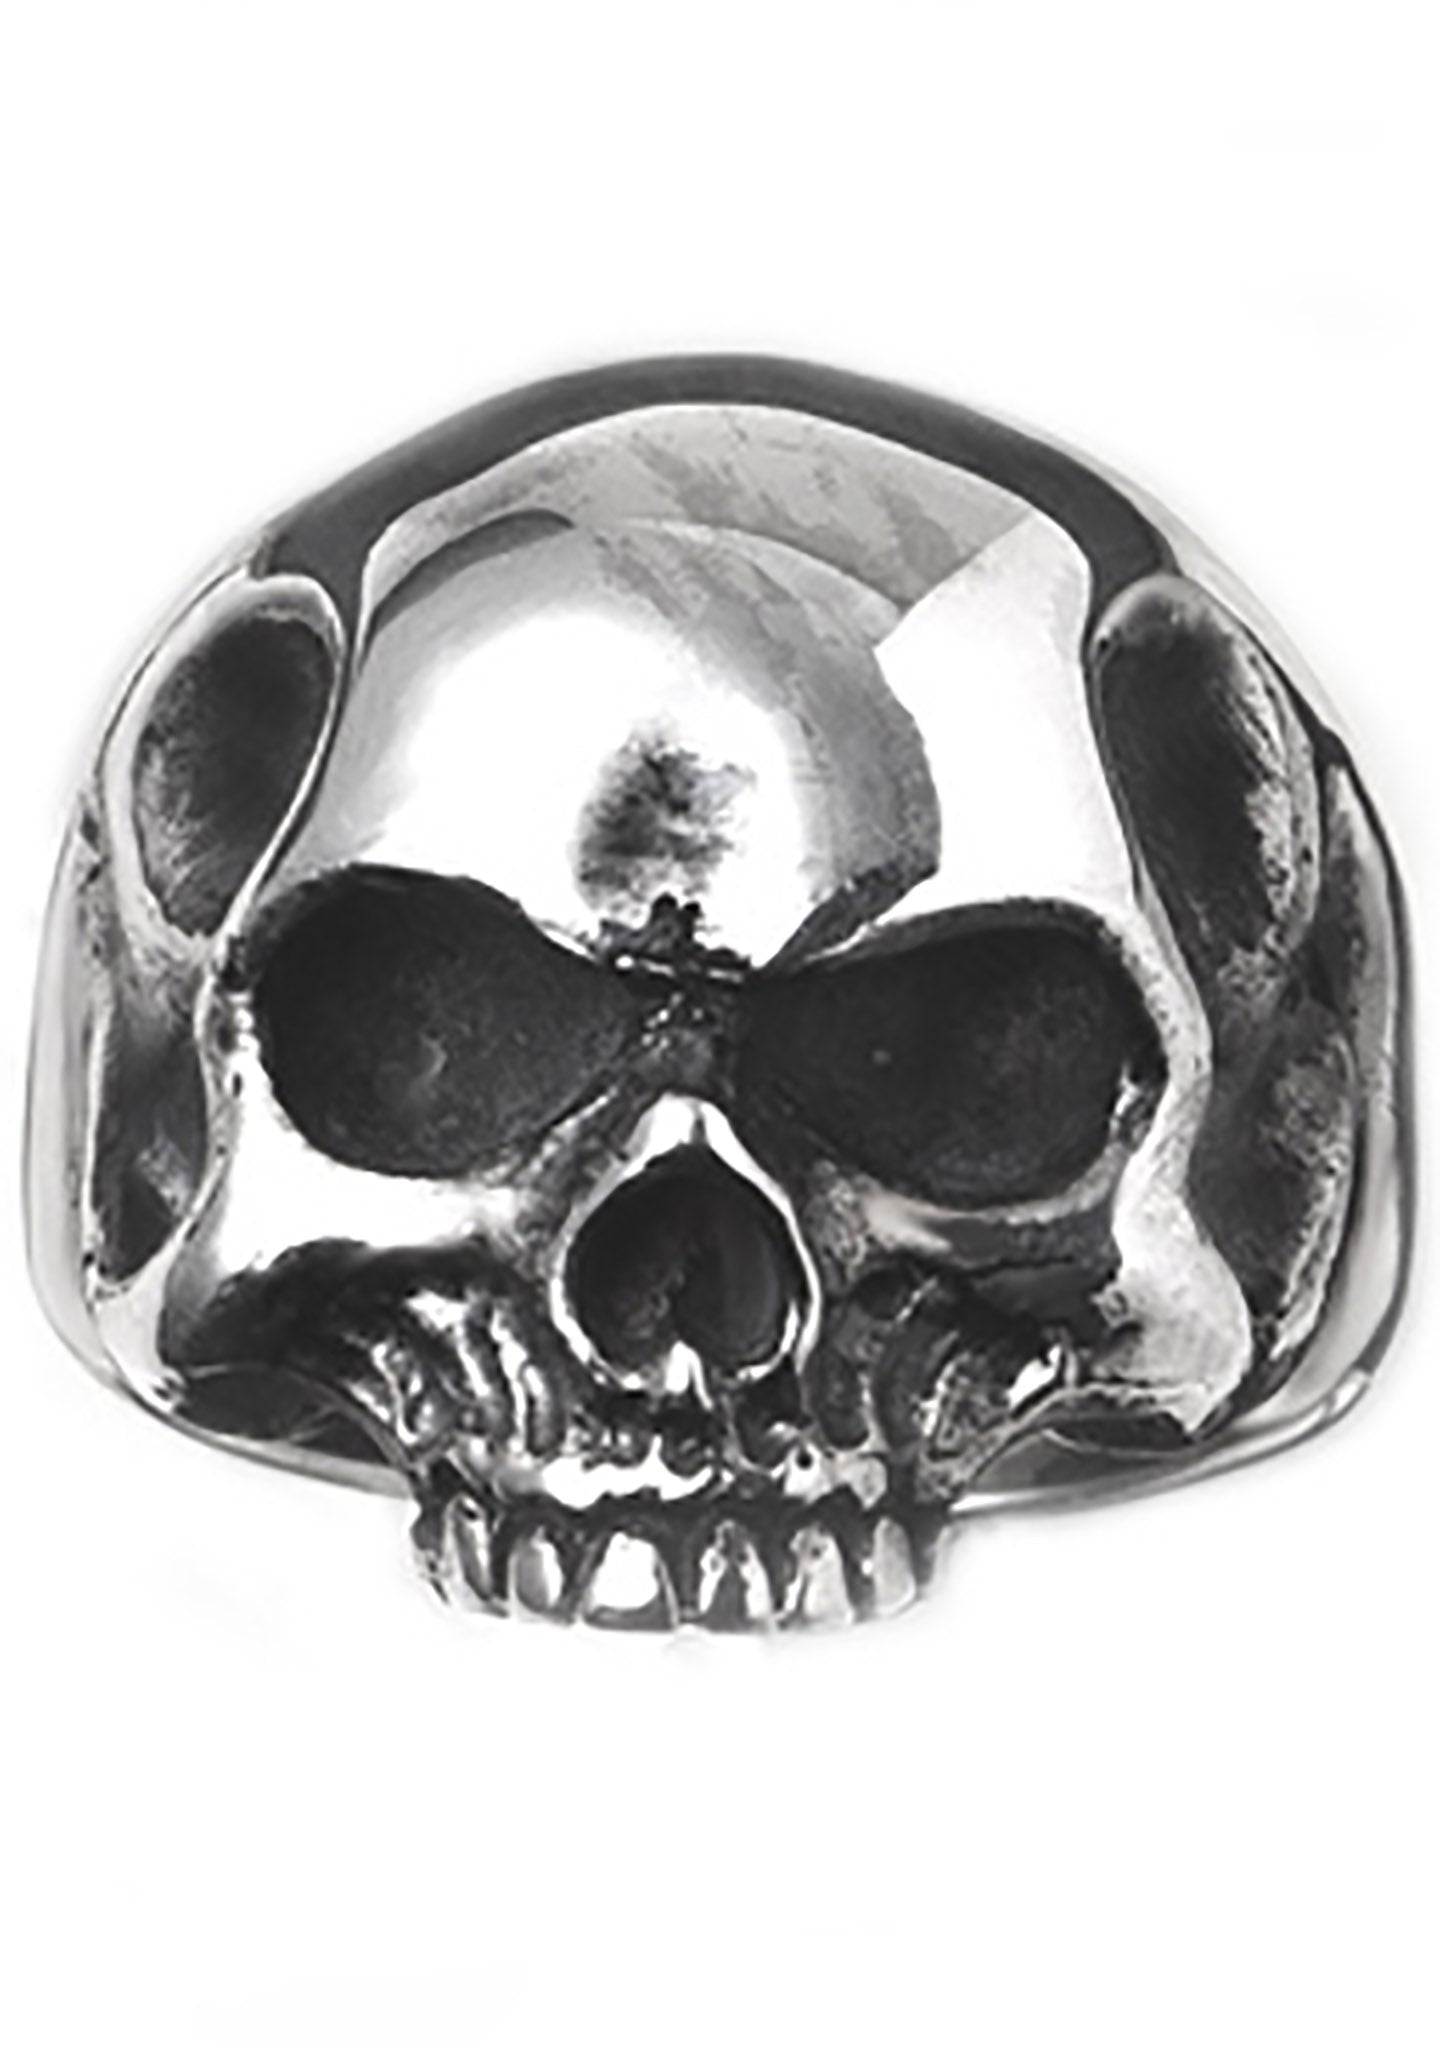 2 Abnormal Sides S Skull Ring